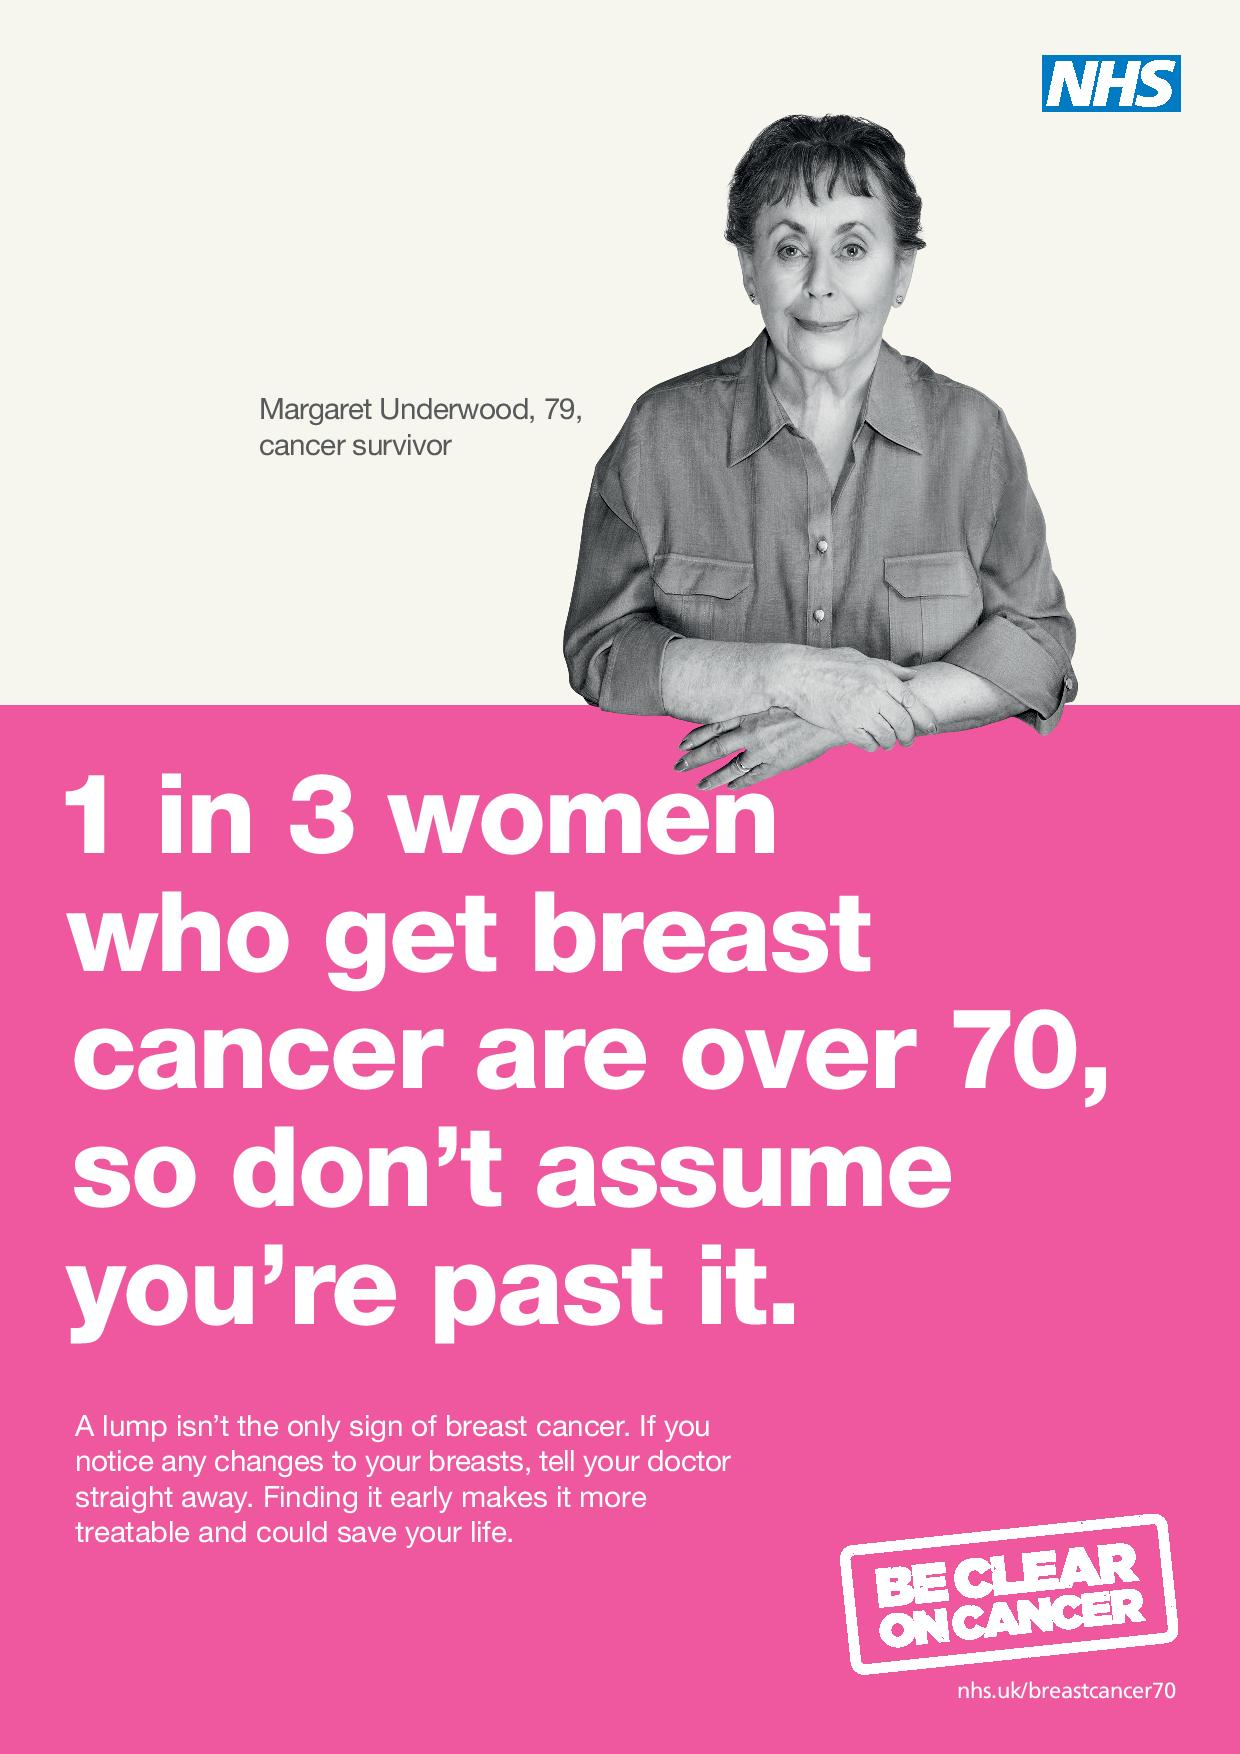 1 in 3 women who get breast cancer are over 70, so don't assume you're past it